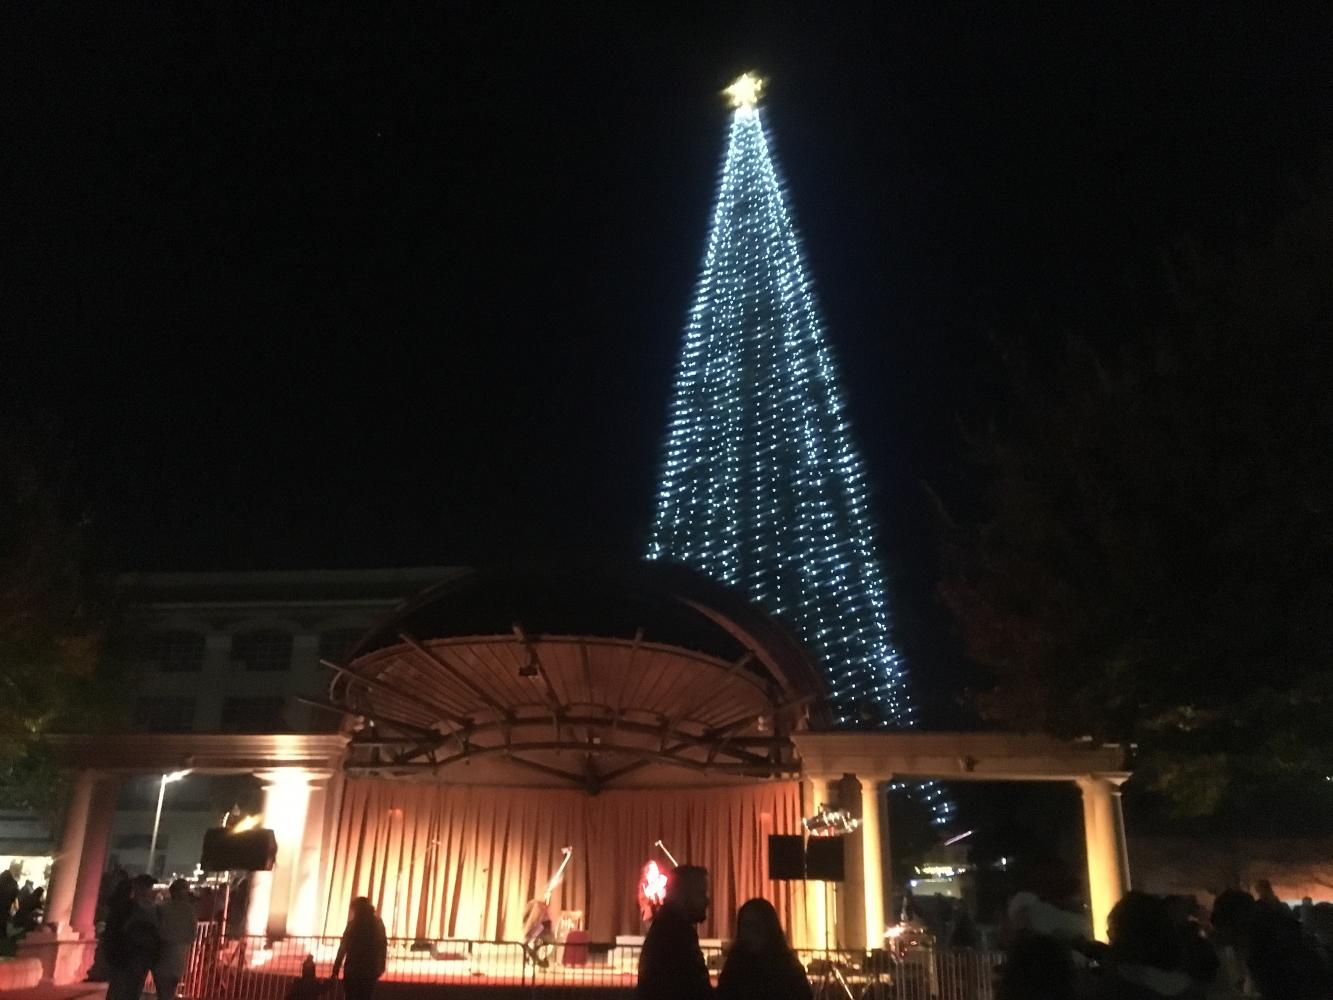 Christmas tree to be lit at the downtown City Plaza in Chico. Photo credit: Natalie Hanson